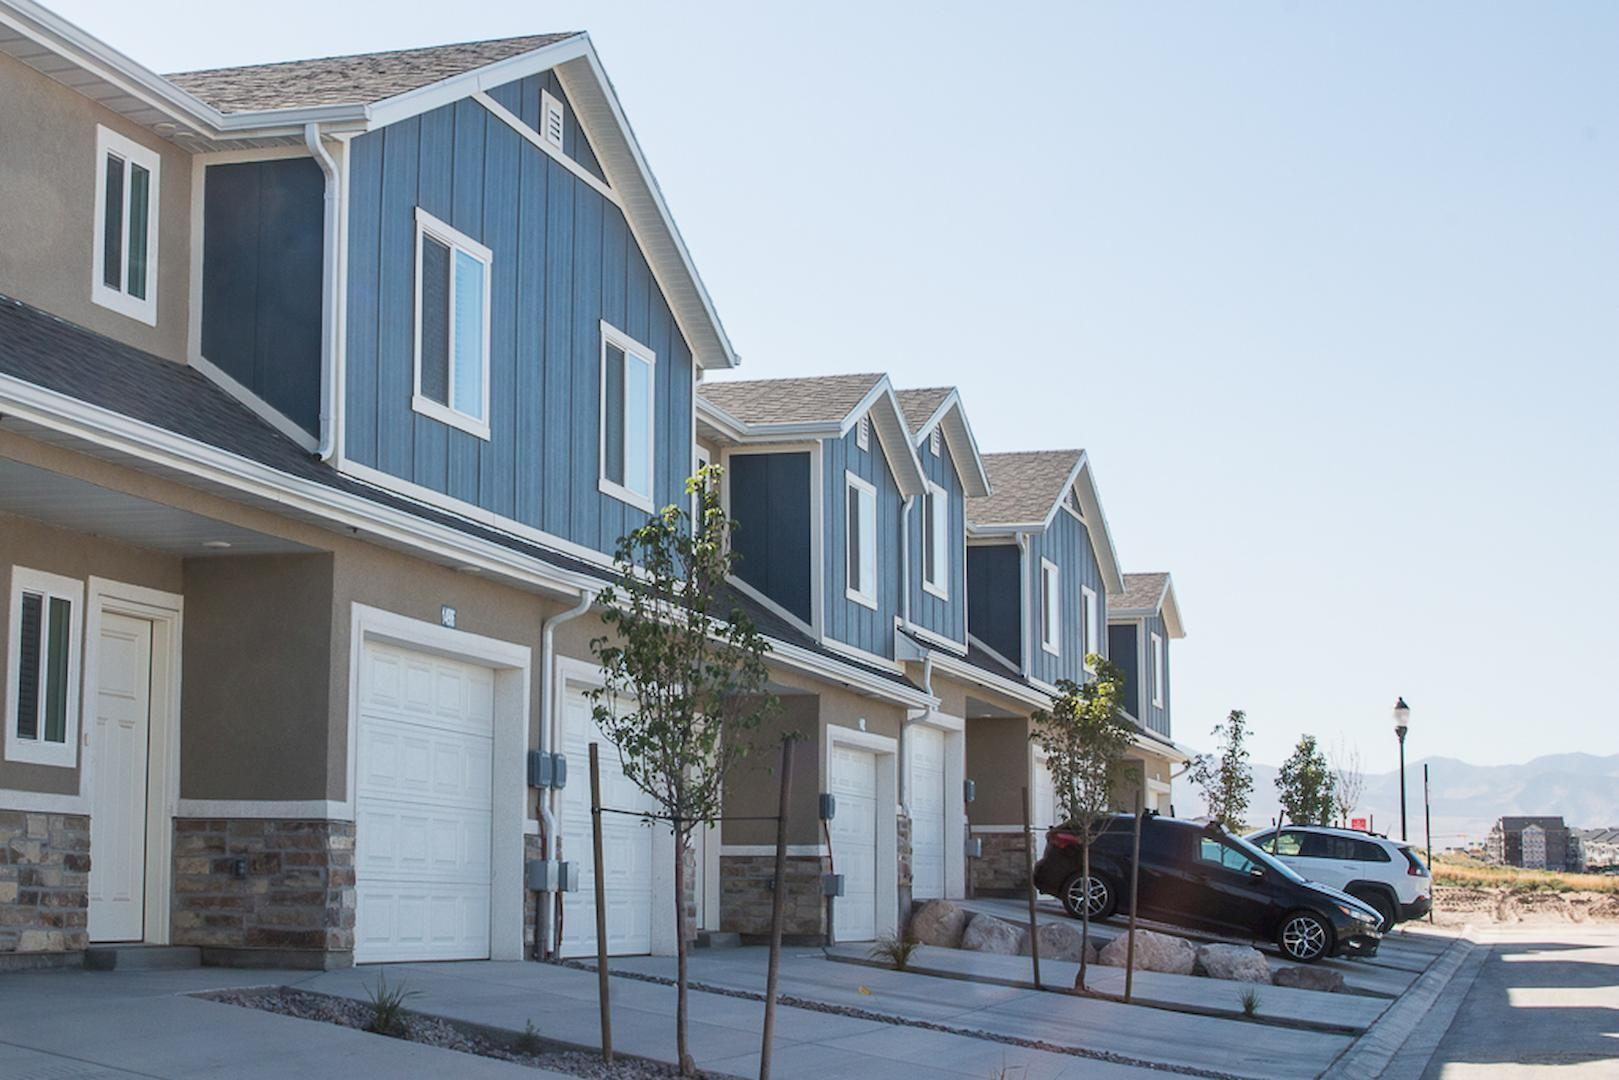 The Boulders is one of Utah's best fourplex developments